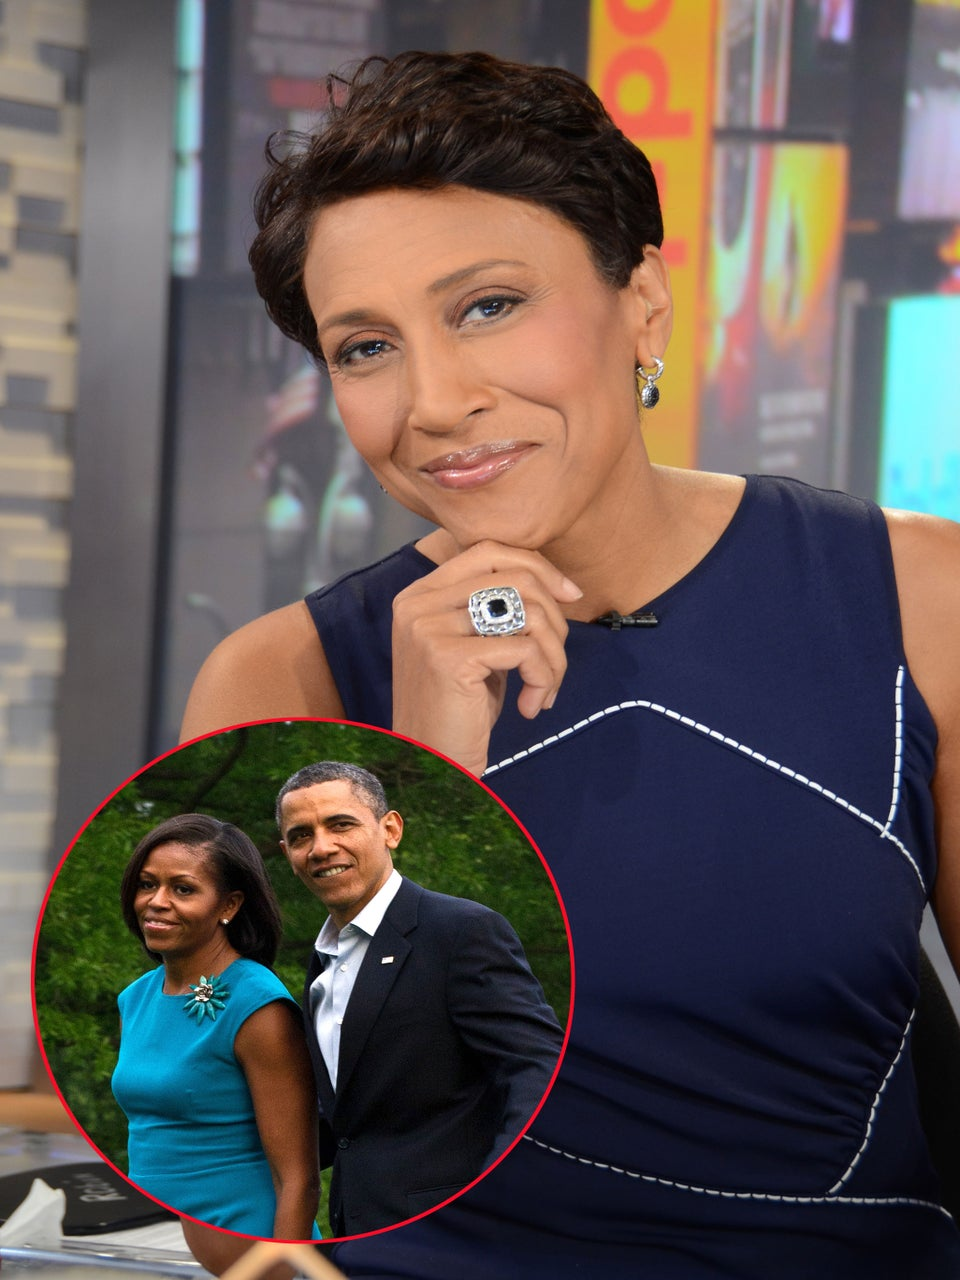 Mr. & Mrs. Obama Reach Out to Robin Roberts